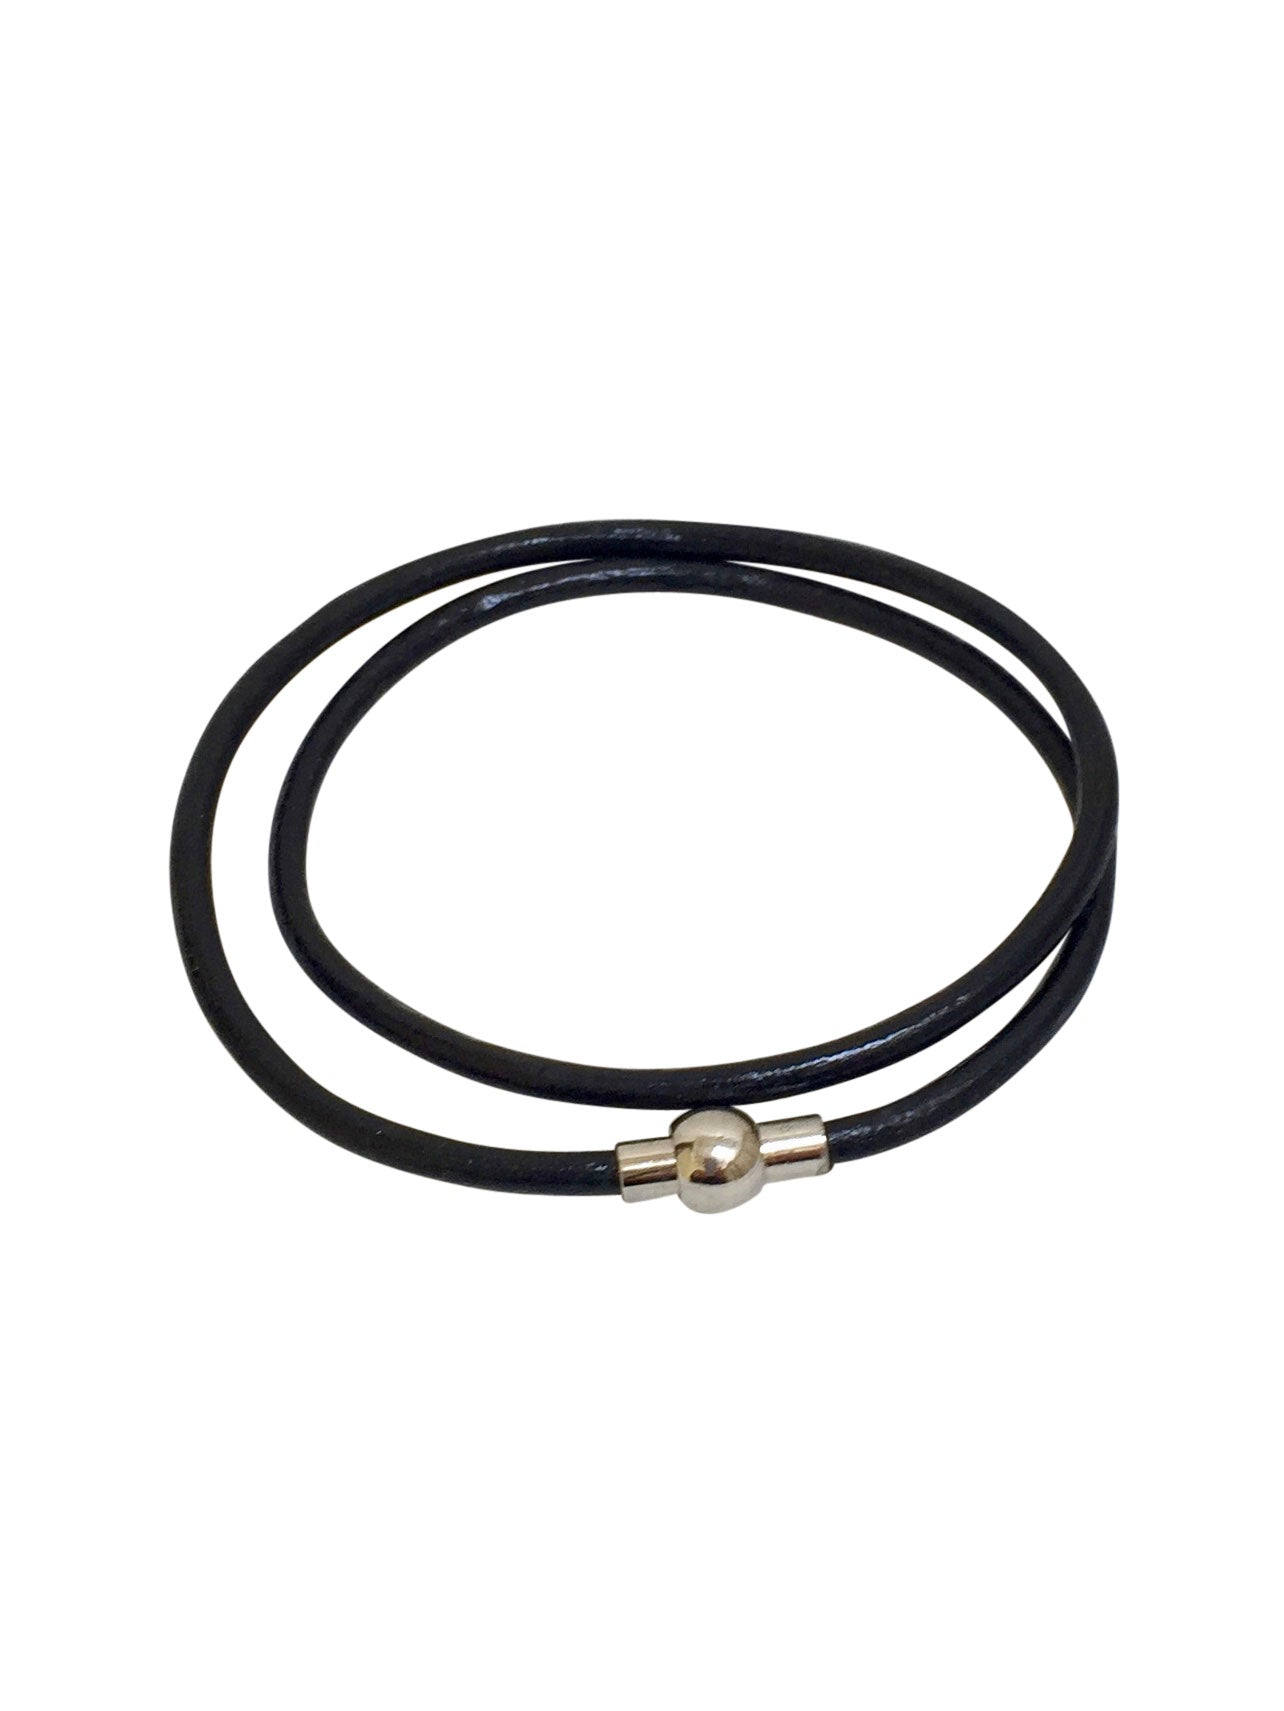 Leather Black Double Bracelet